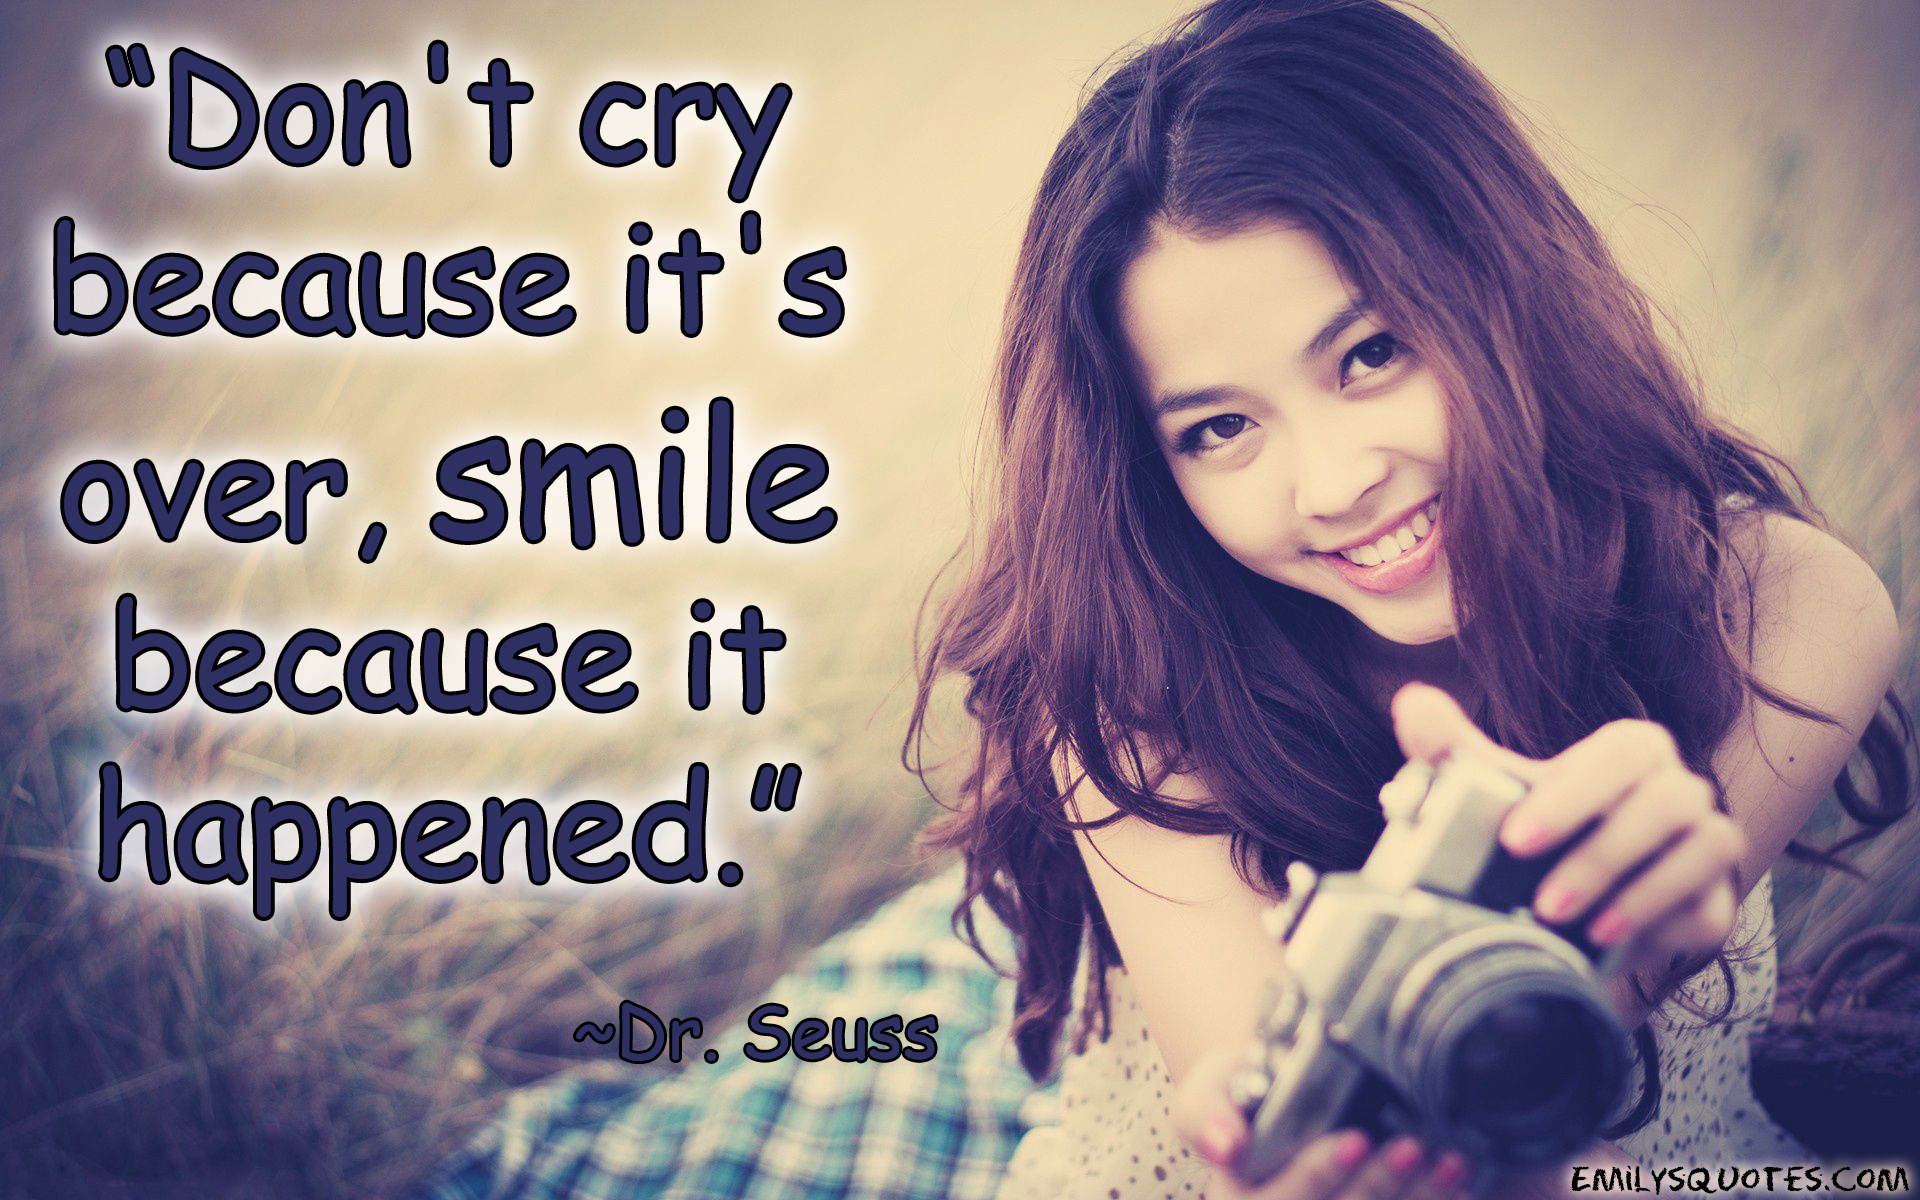 Cute Girl Wallpaper With Attitude Quotes Don T Cry Because It S Over Smile Because It Happened